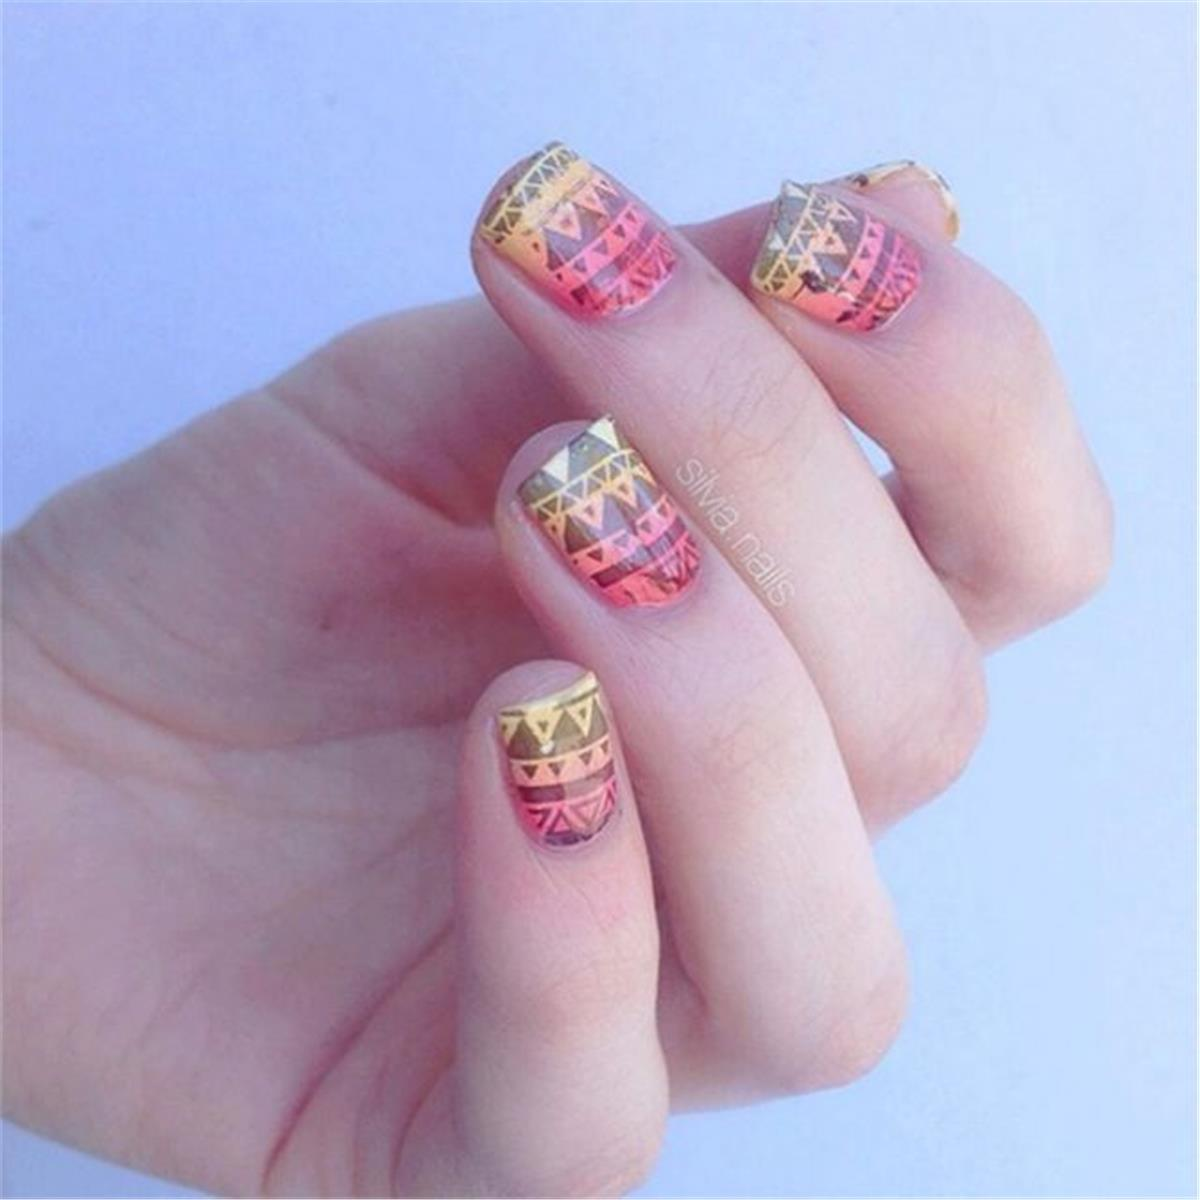 25587853_nails2.limghandler